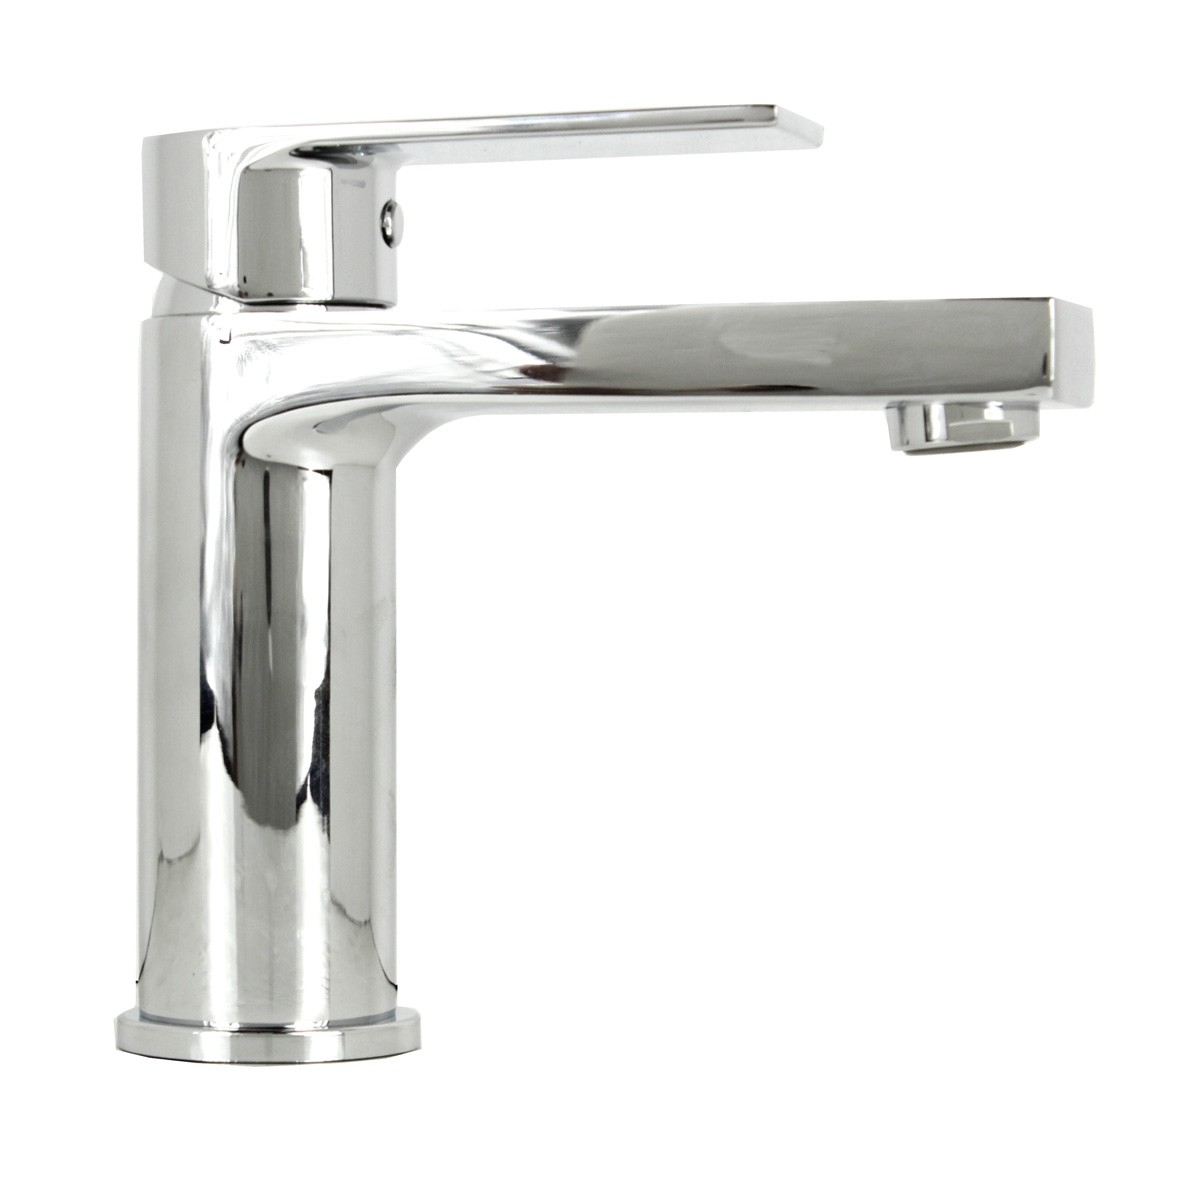 Anna polished chrome bathroom vessel sink single hole faucet for Single hole faucet bathroom sink